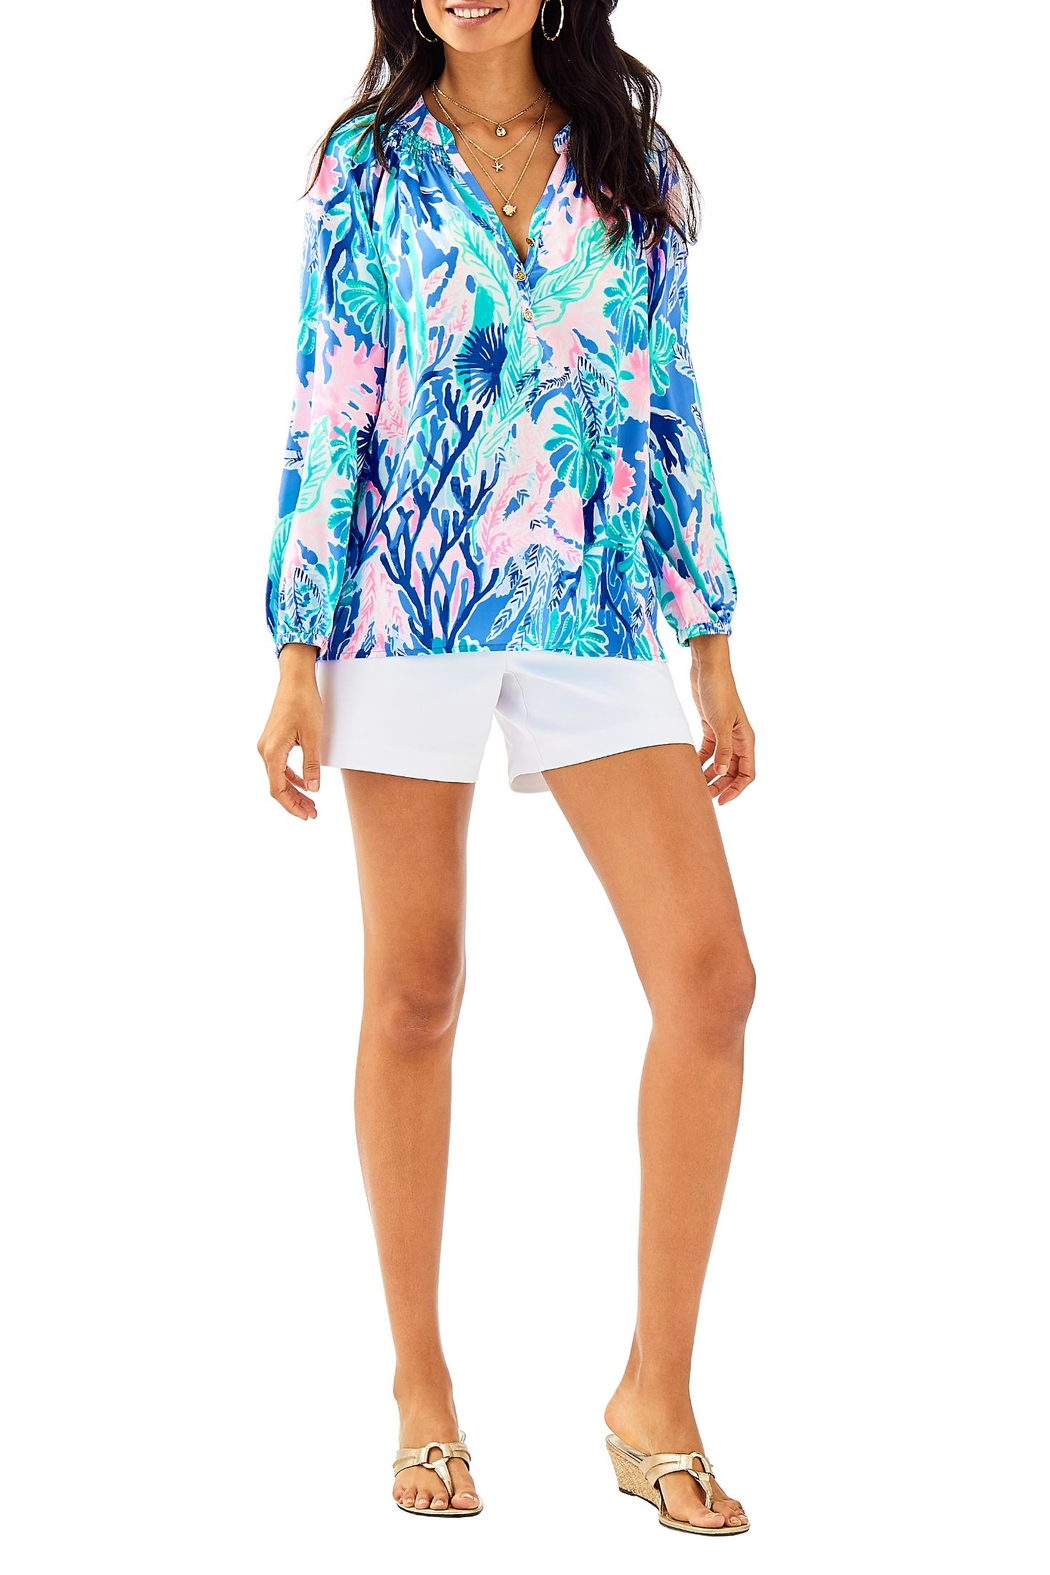 Lilly Pulitzer Elsa Silk Top - Front Cropped Image